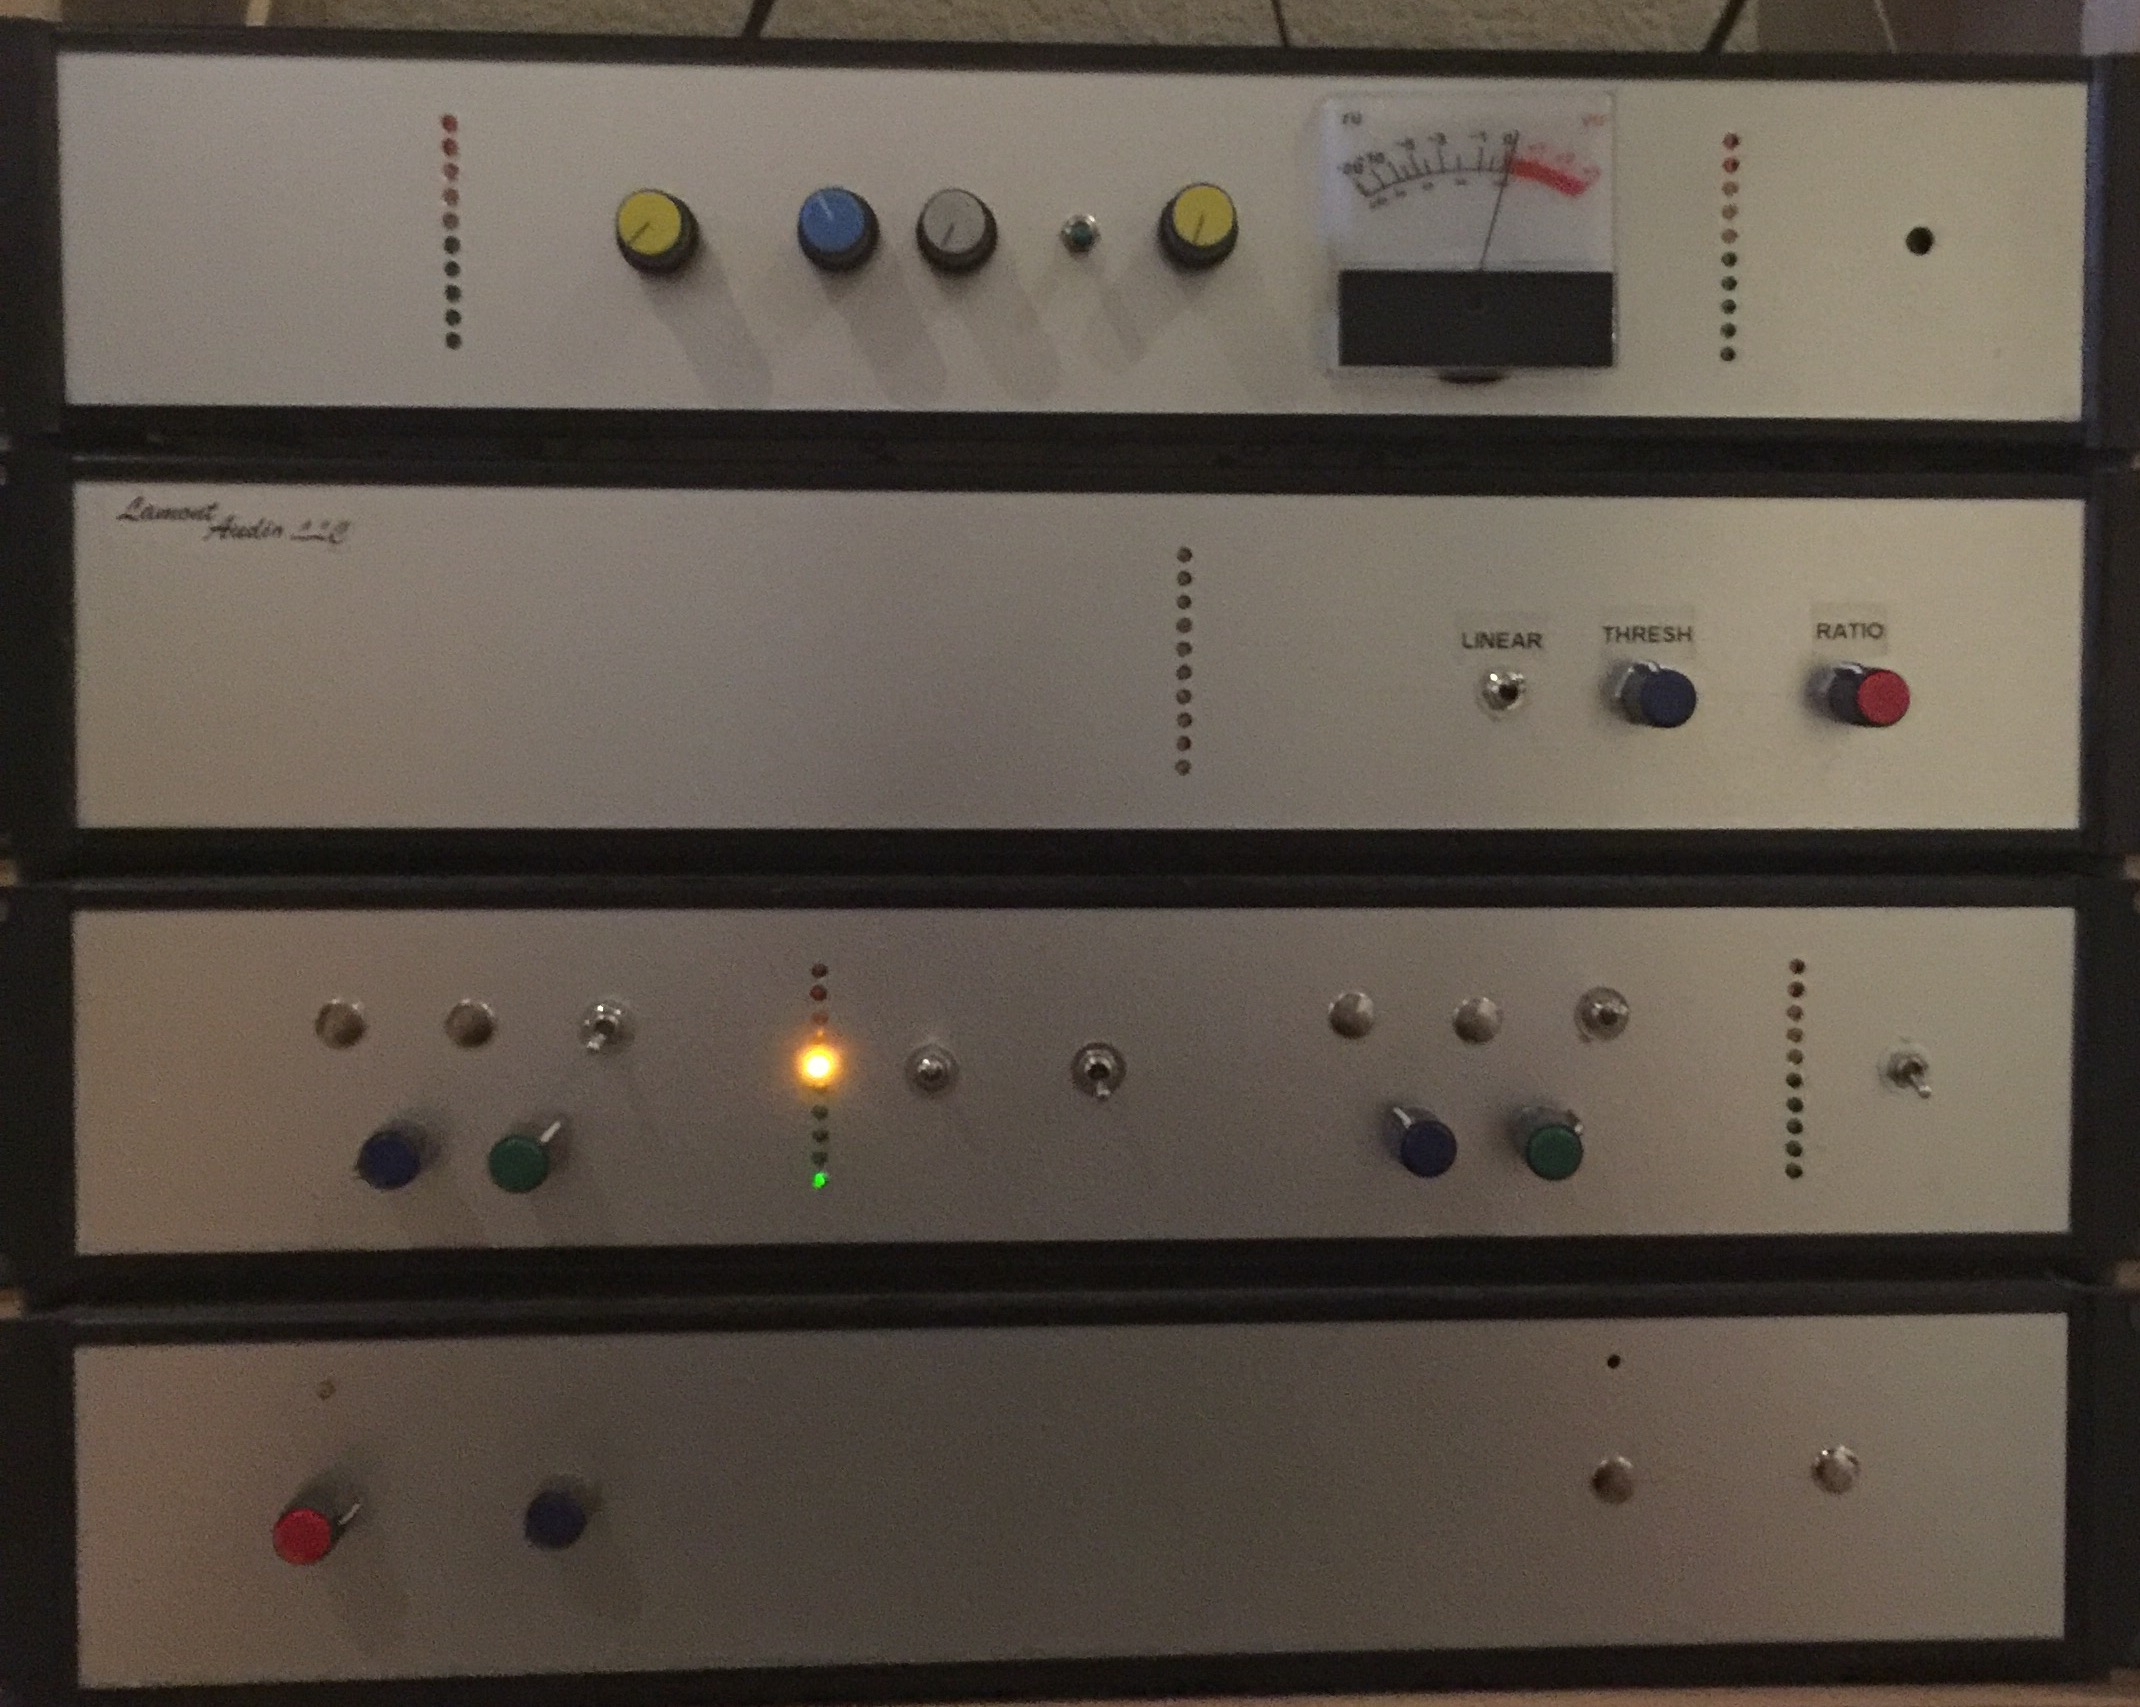 LA-3 and other compressors